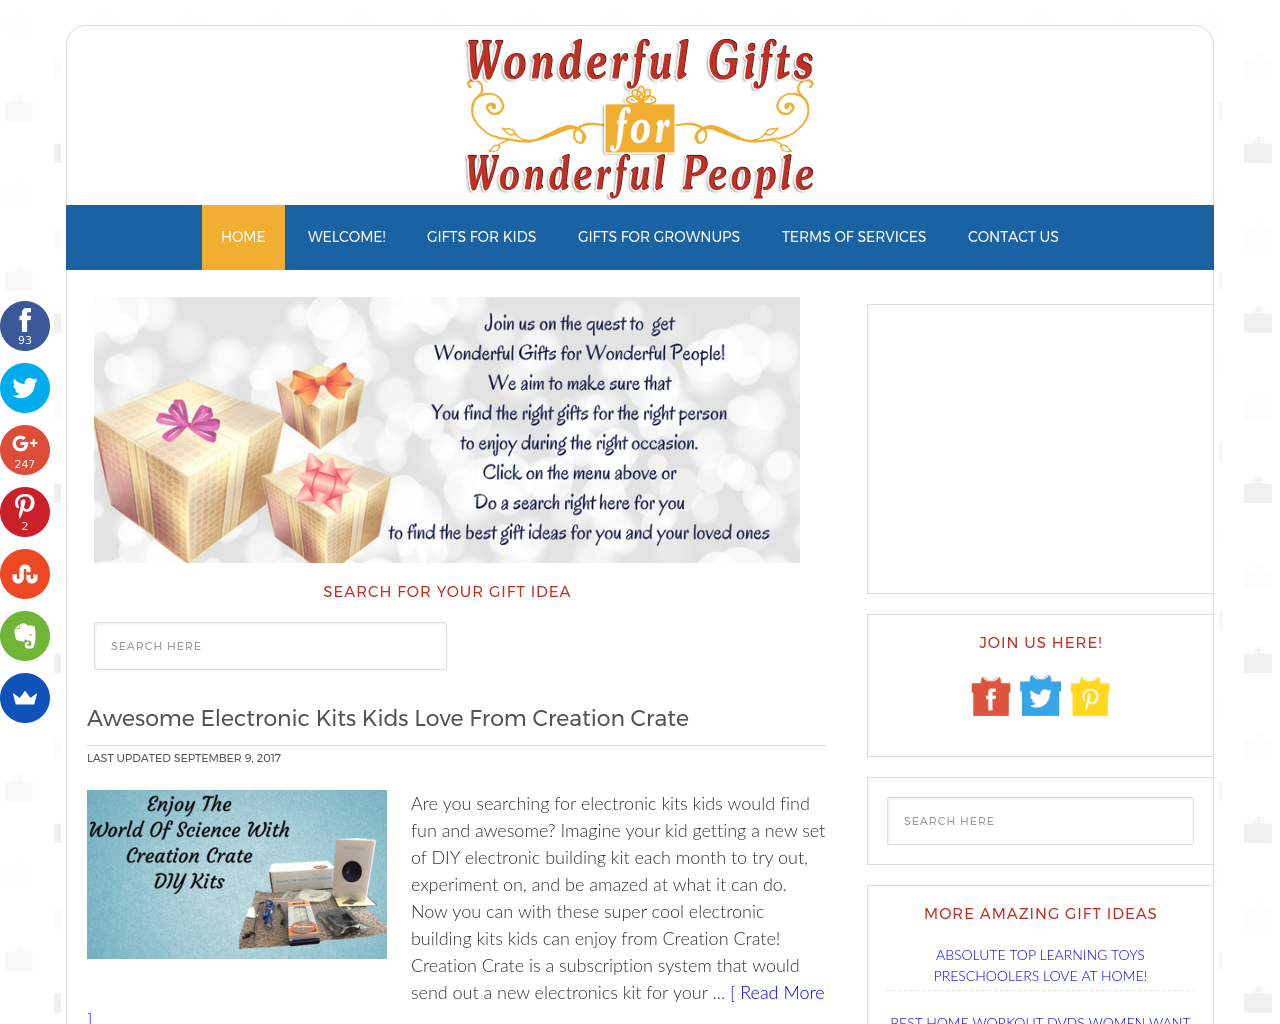 Wonderful-Gifts-for-Wonderful-People-Advertising-Reviews-Pricing